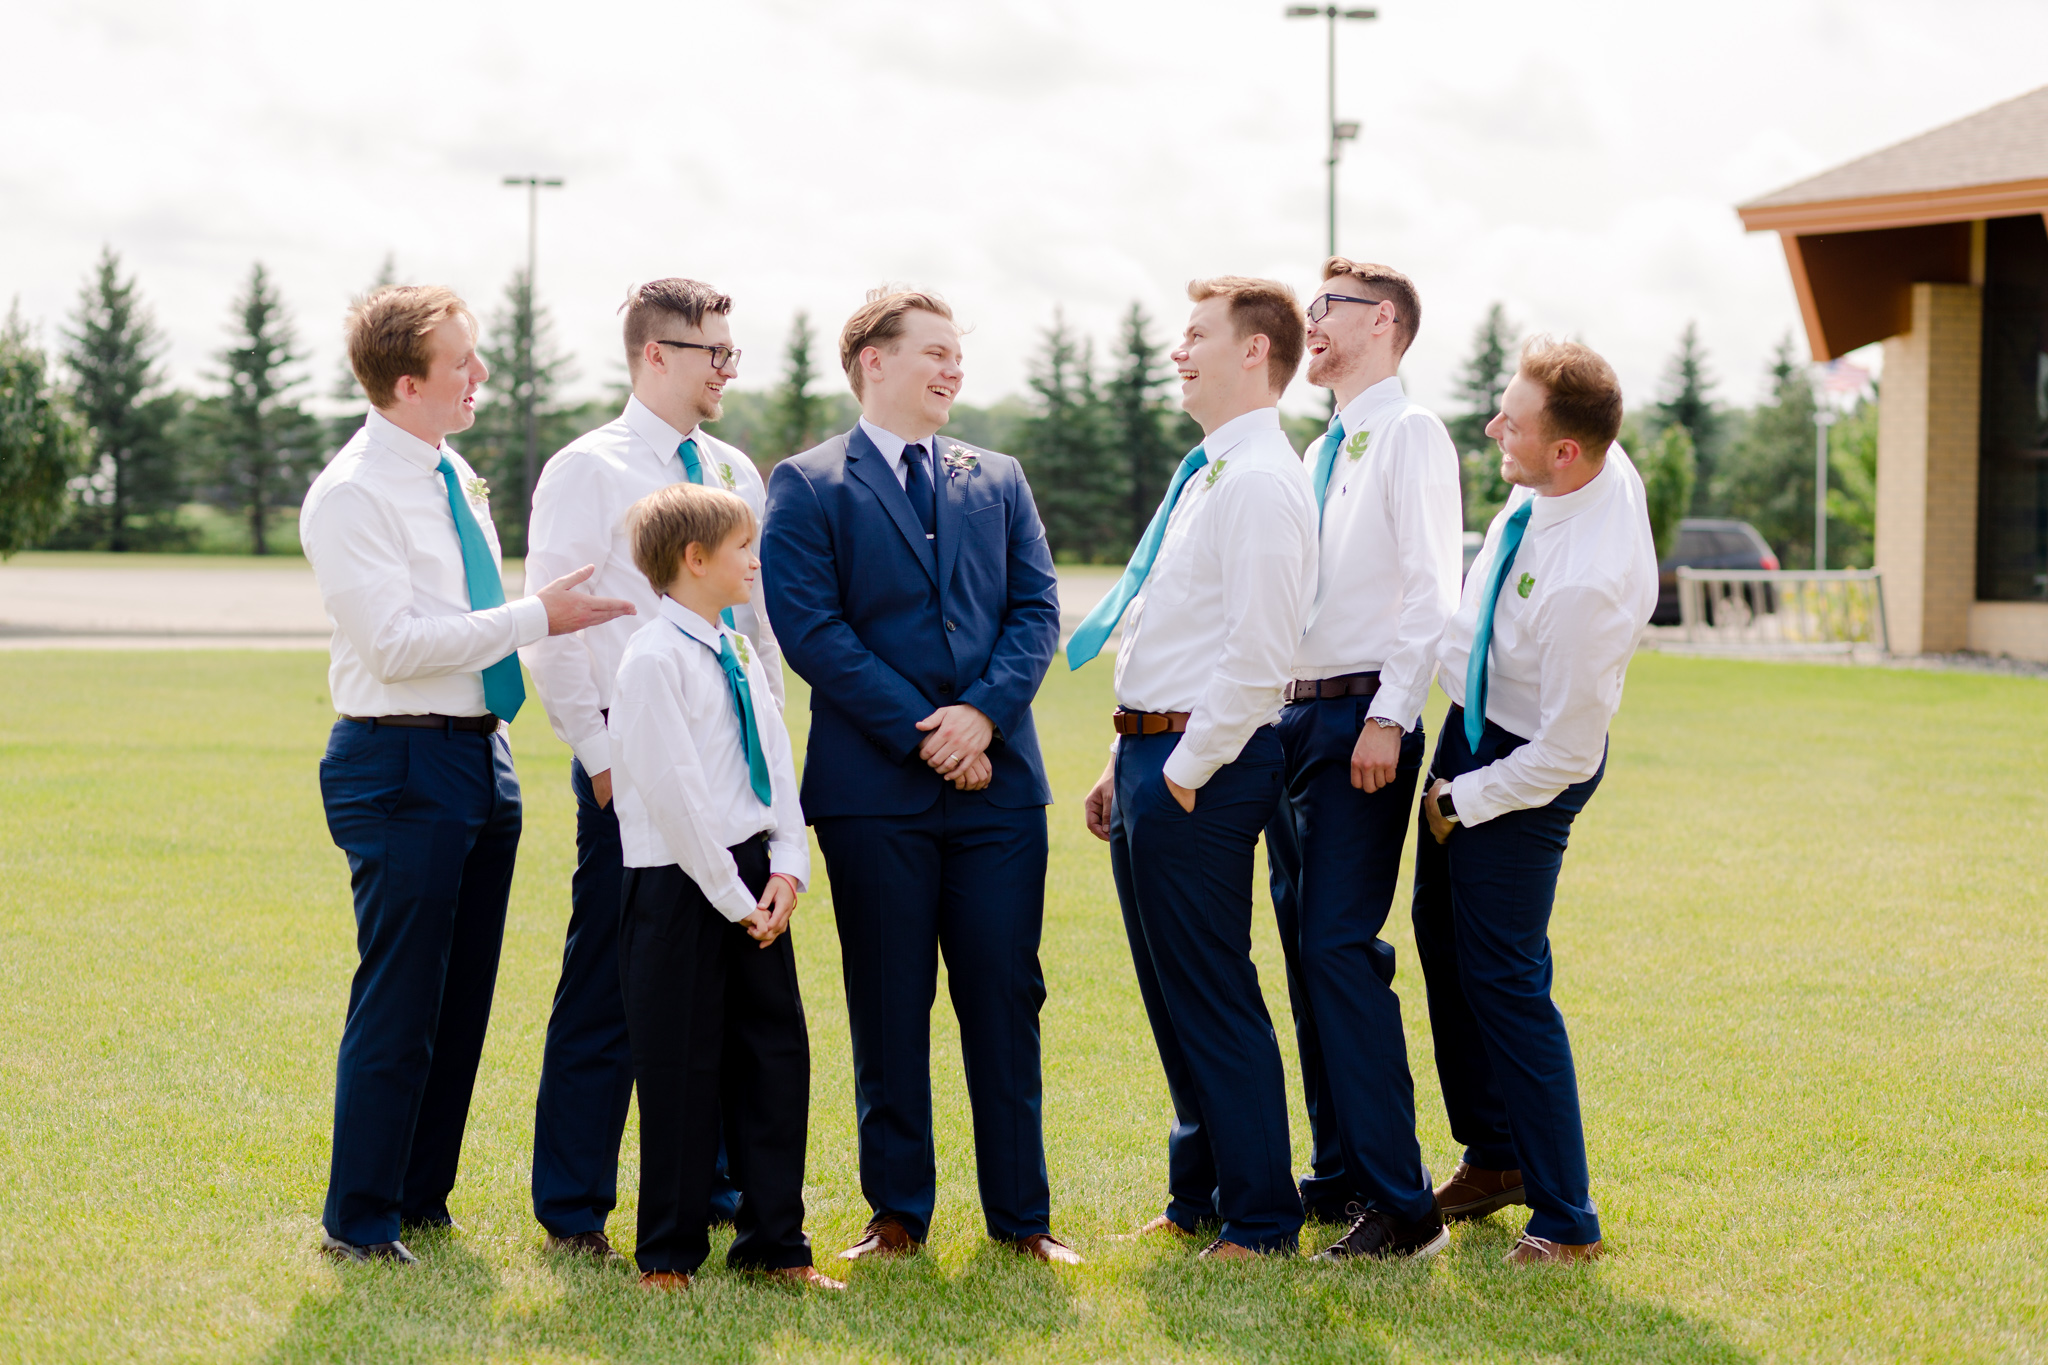 Fargo Moorhead Wedding Photography at Lutheran Church of the Good Shepherd by Chelsea Joy Photography